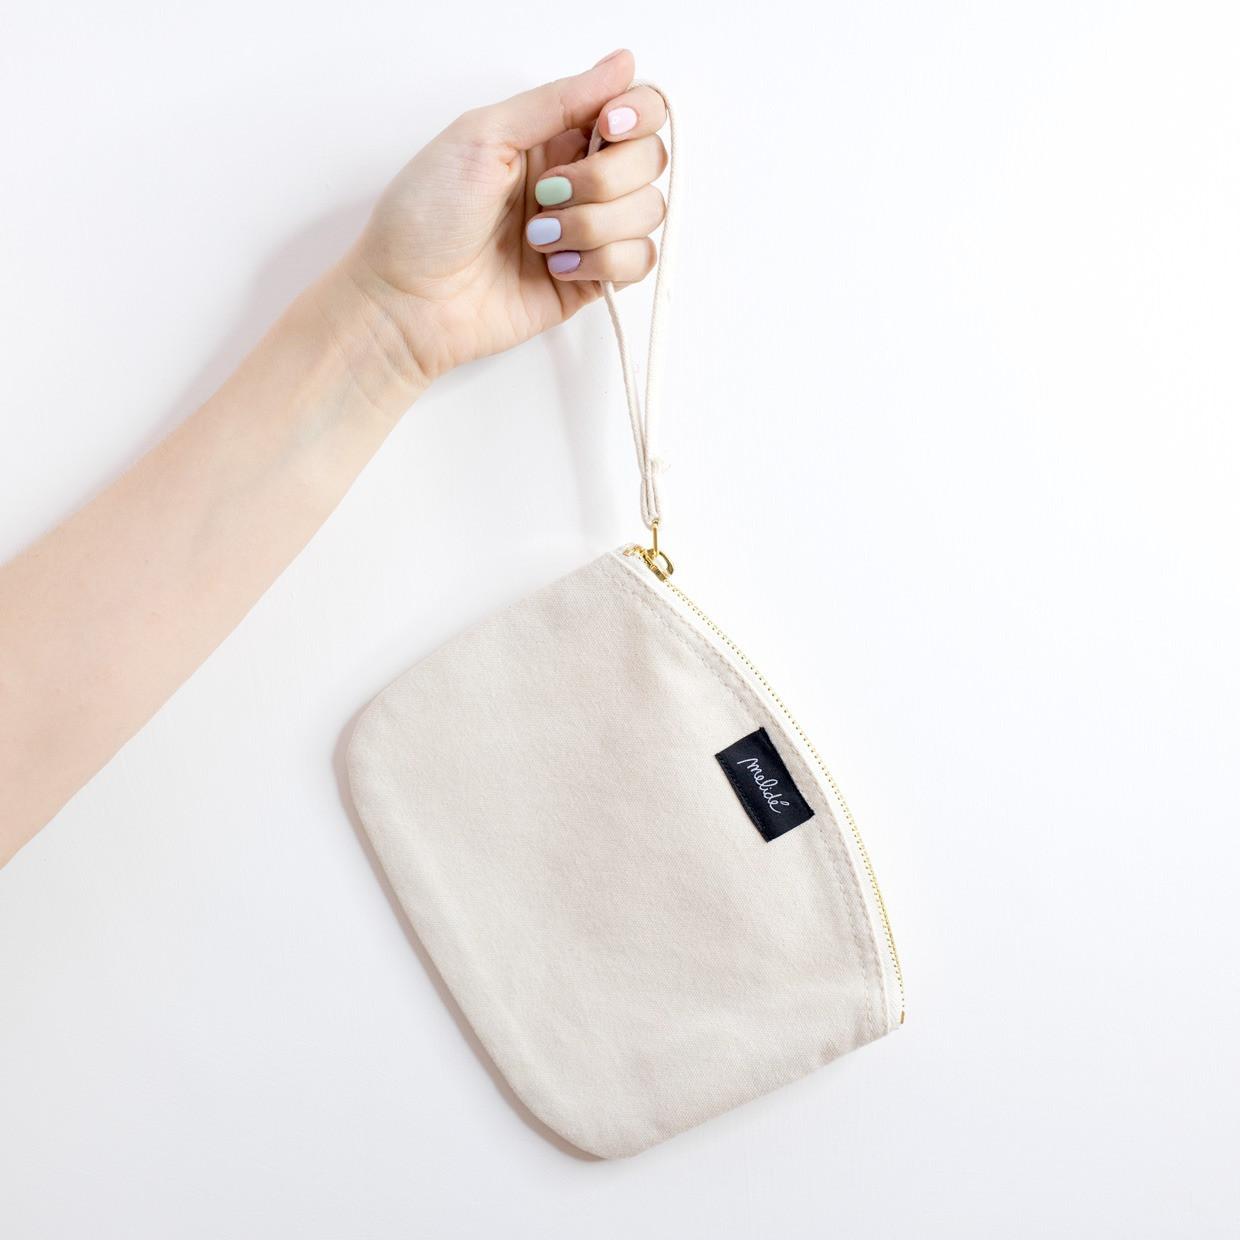 The ZIPPED POUCH M - Acquario